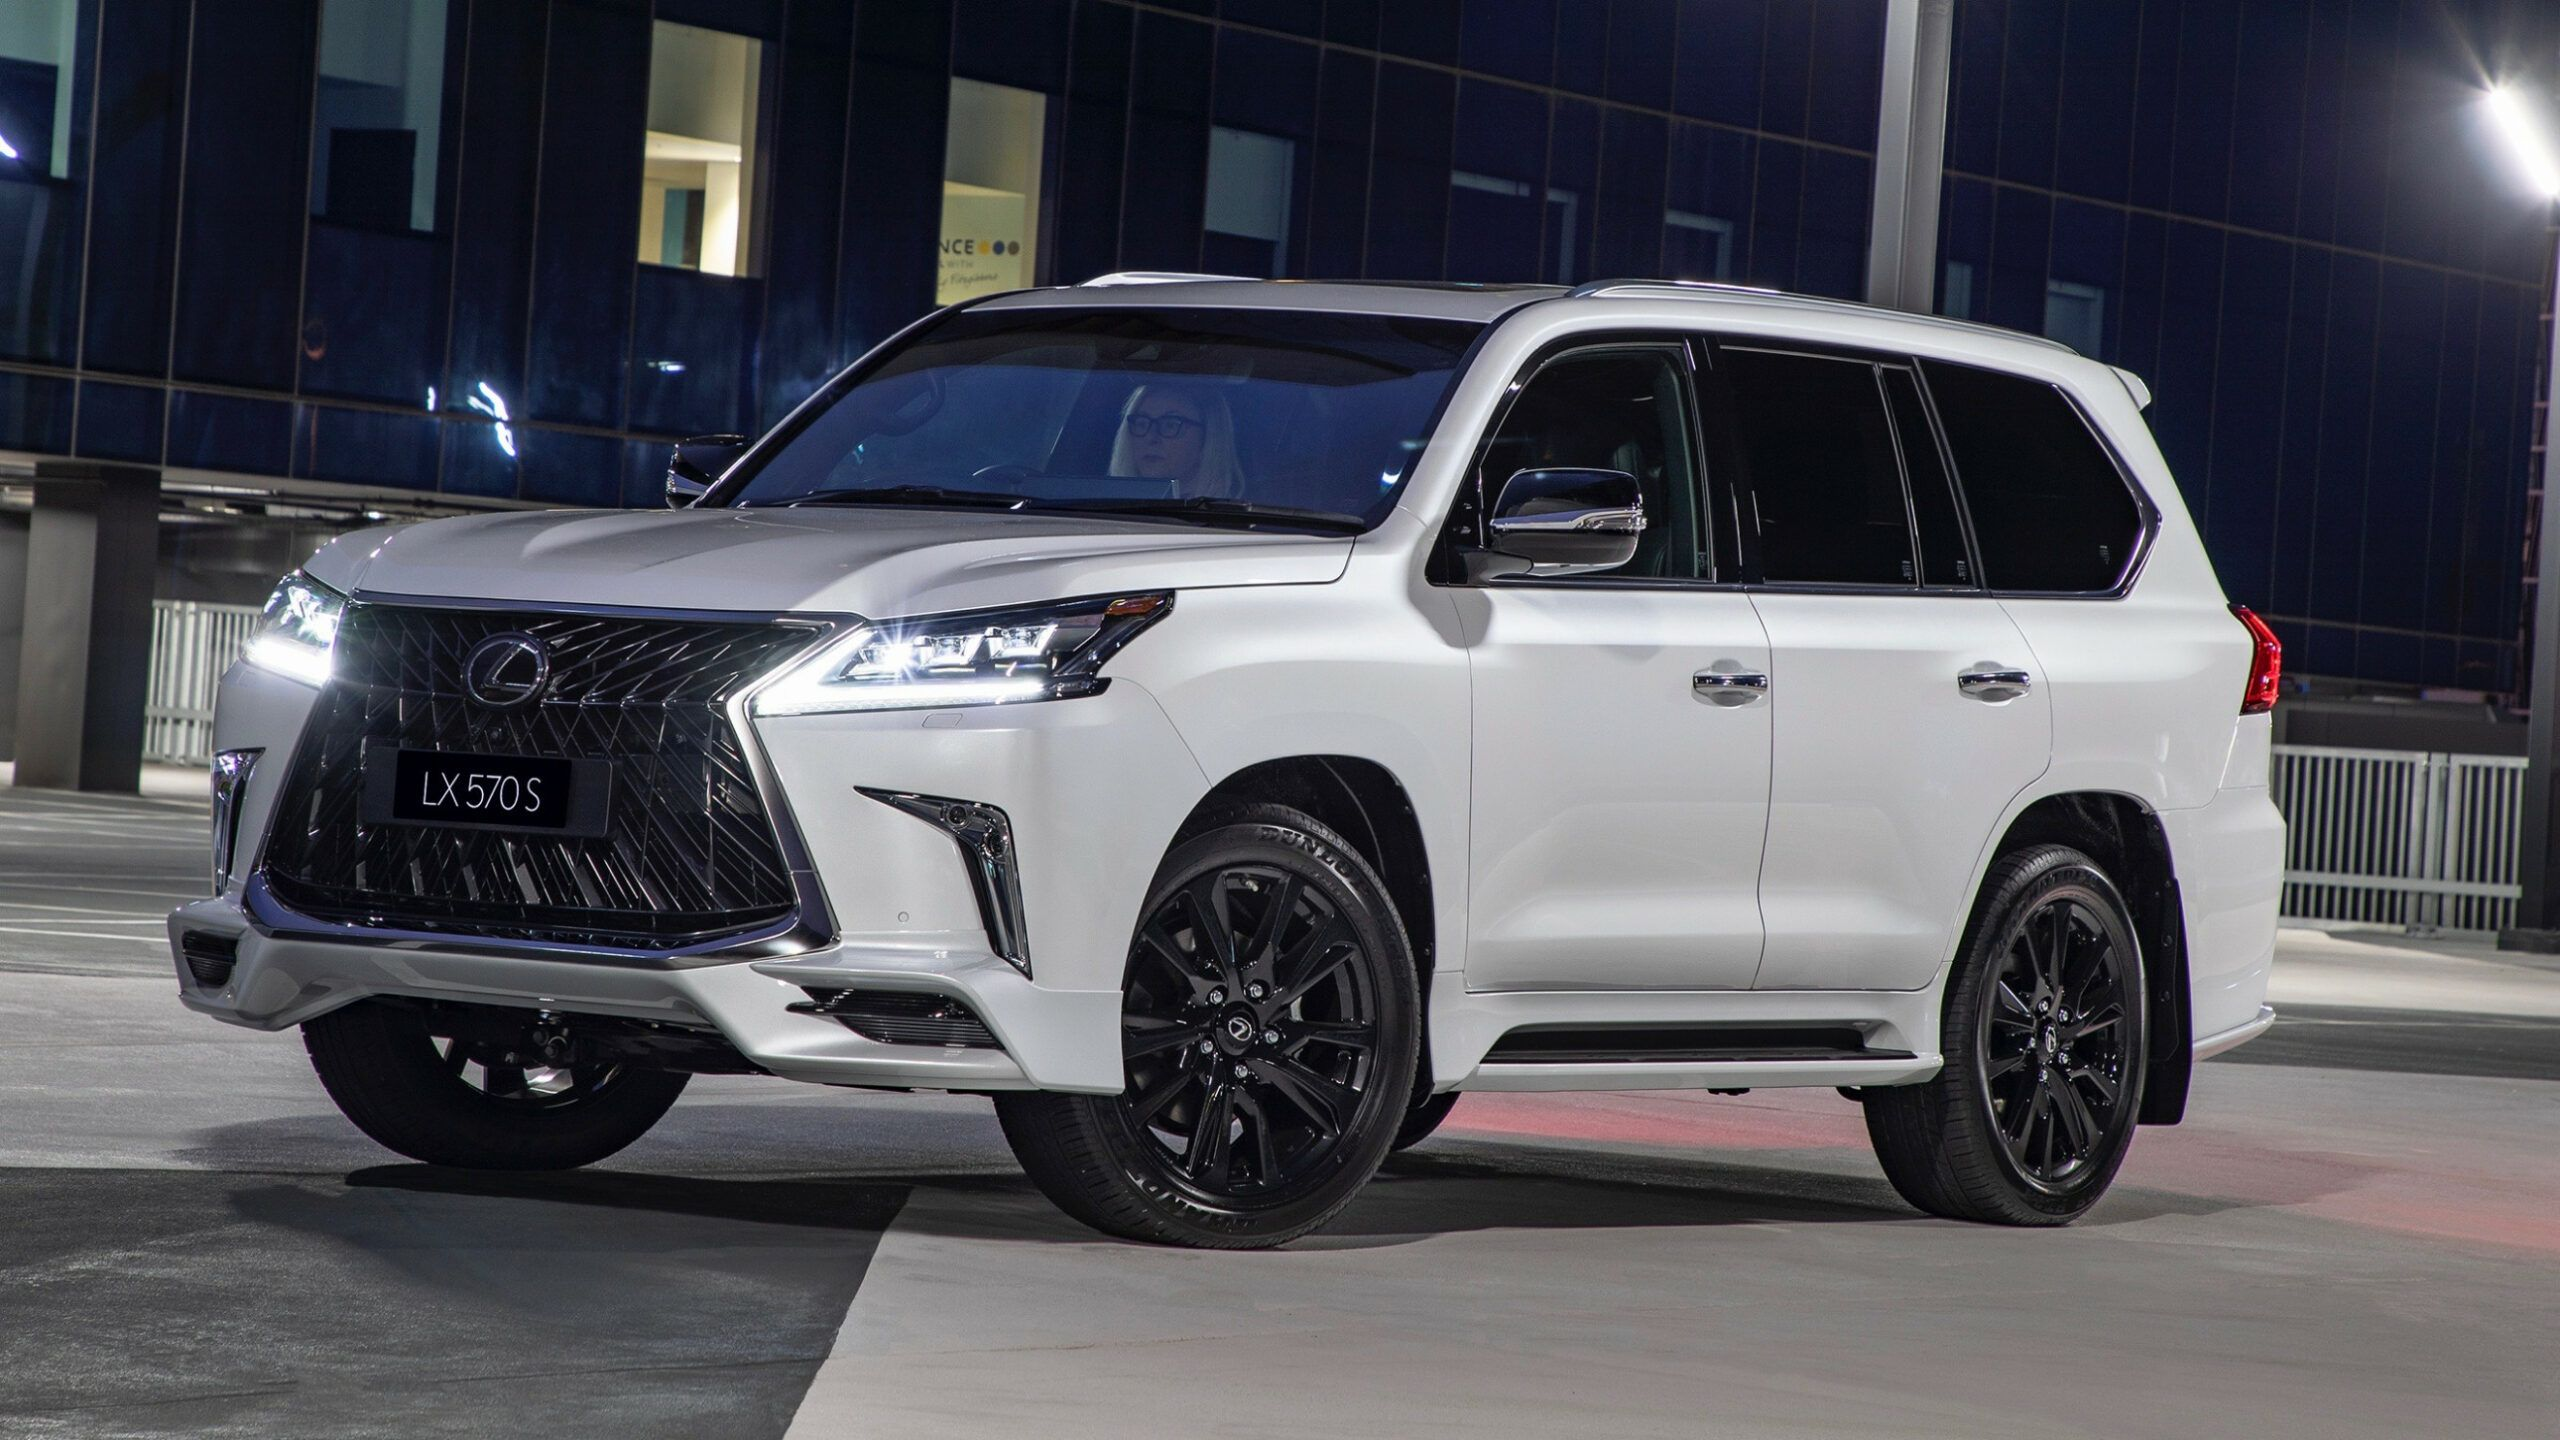 Lexus Lx 570 Model 2020 Prices Di 2020 Gambar